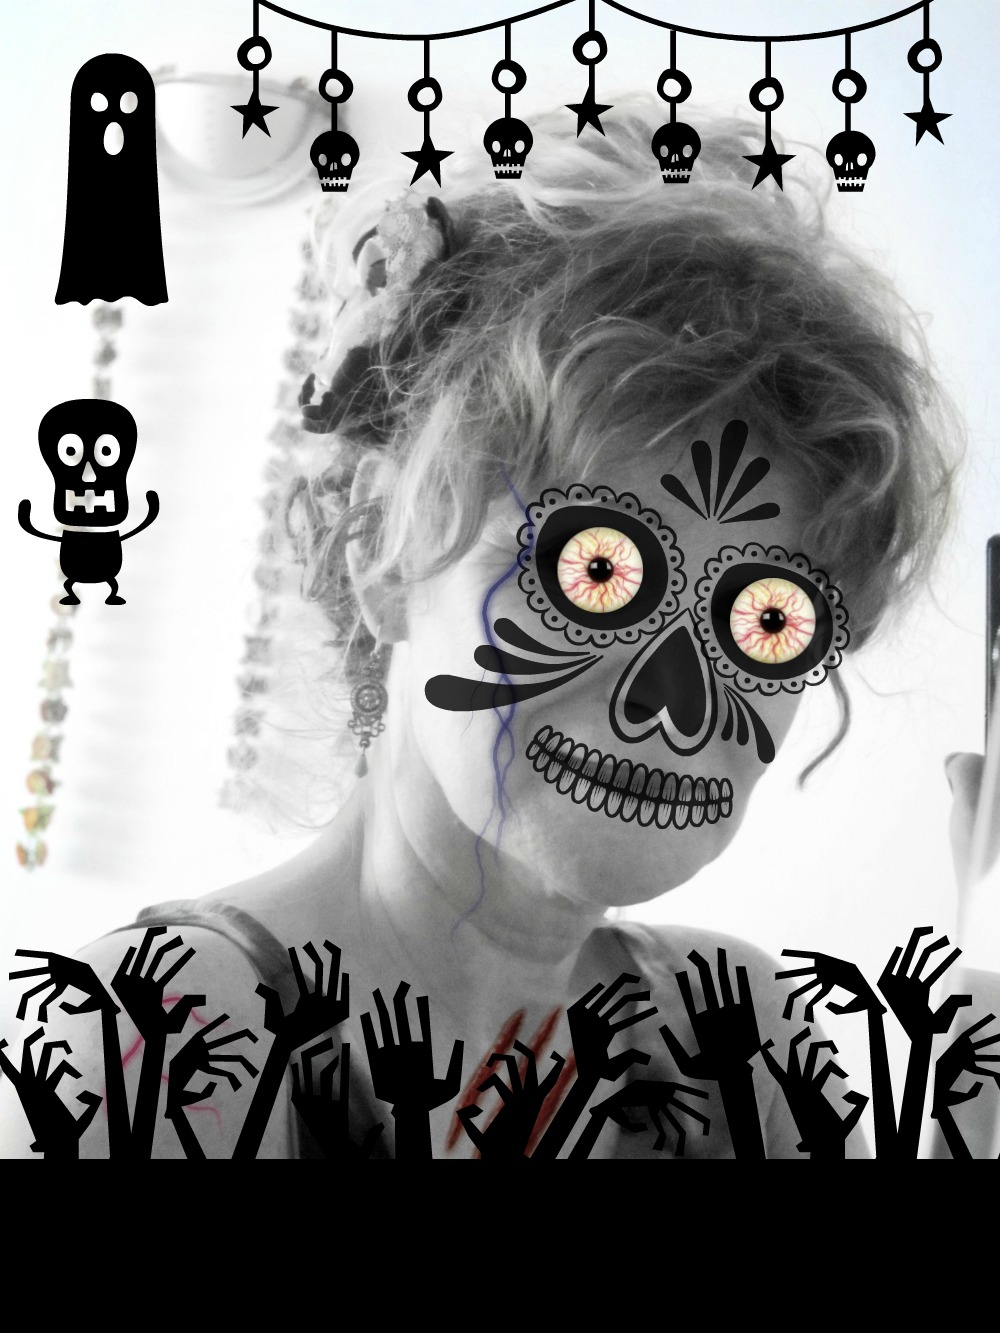 day of the dead face photo edit in picmonkey |curlytraveller.com